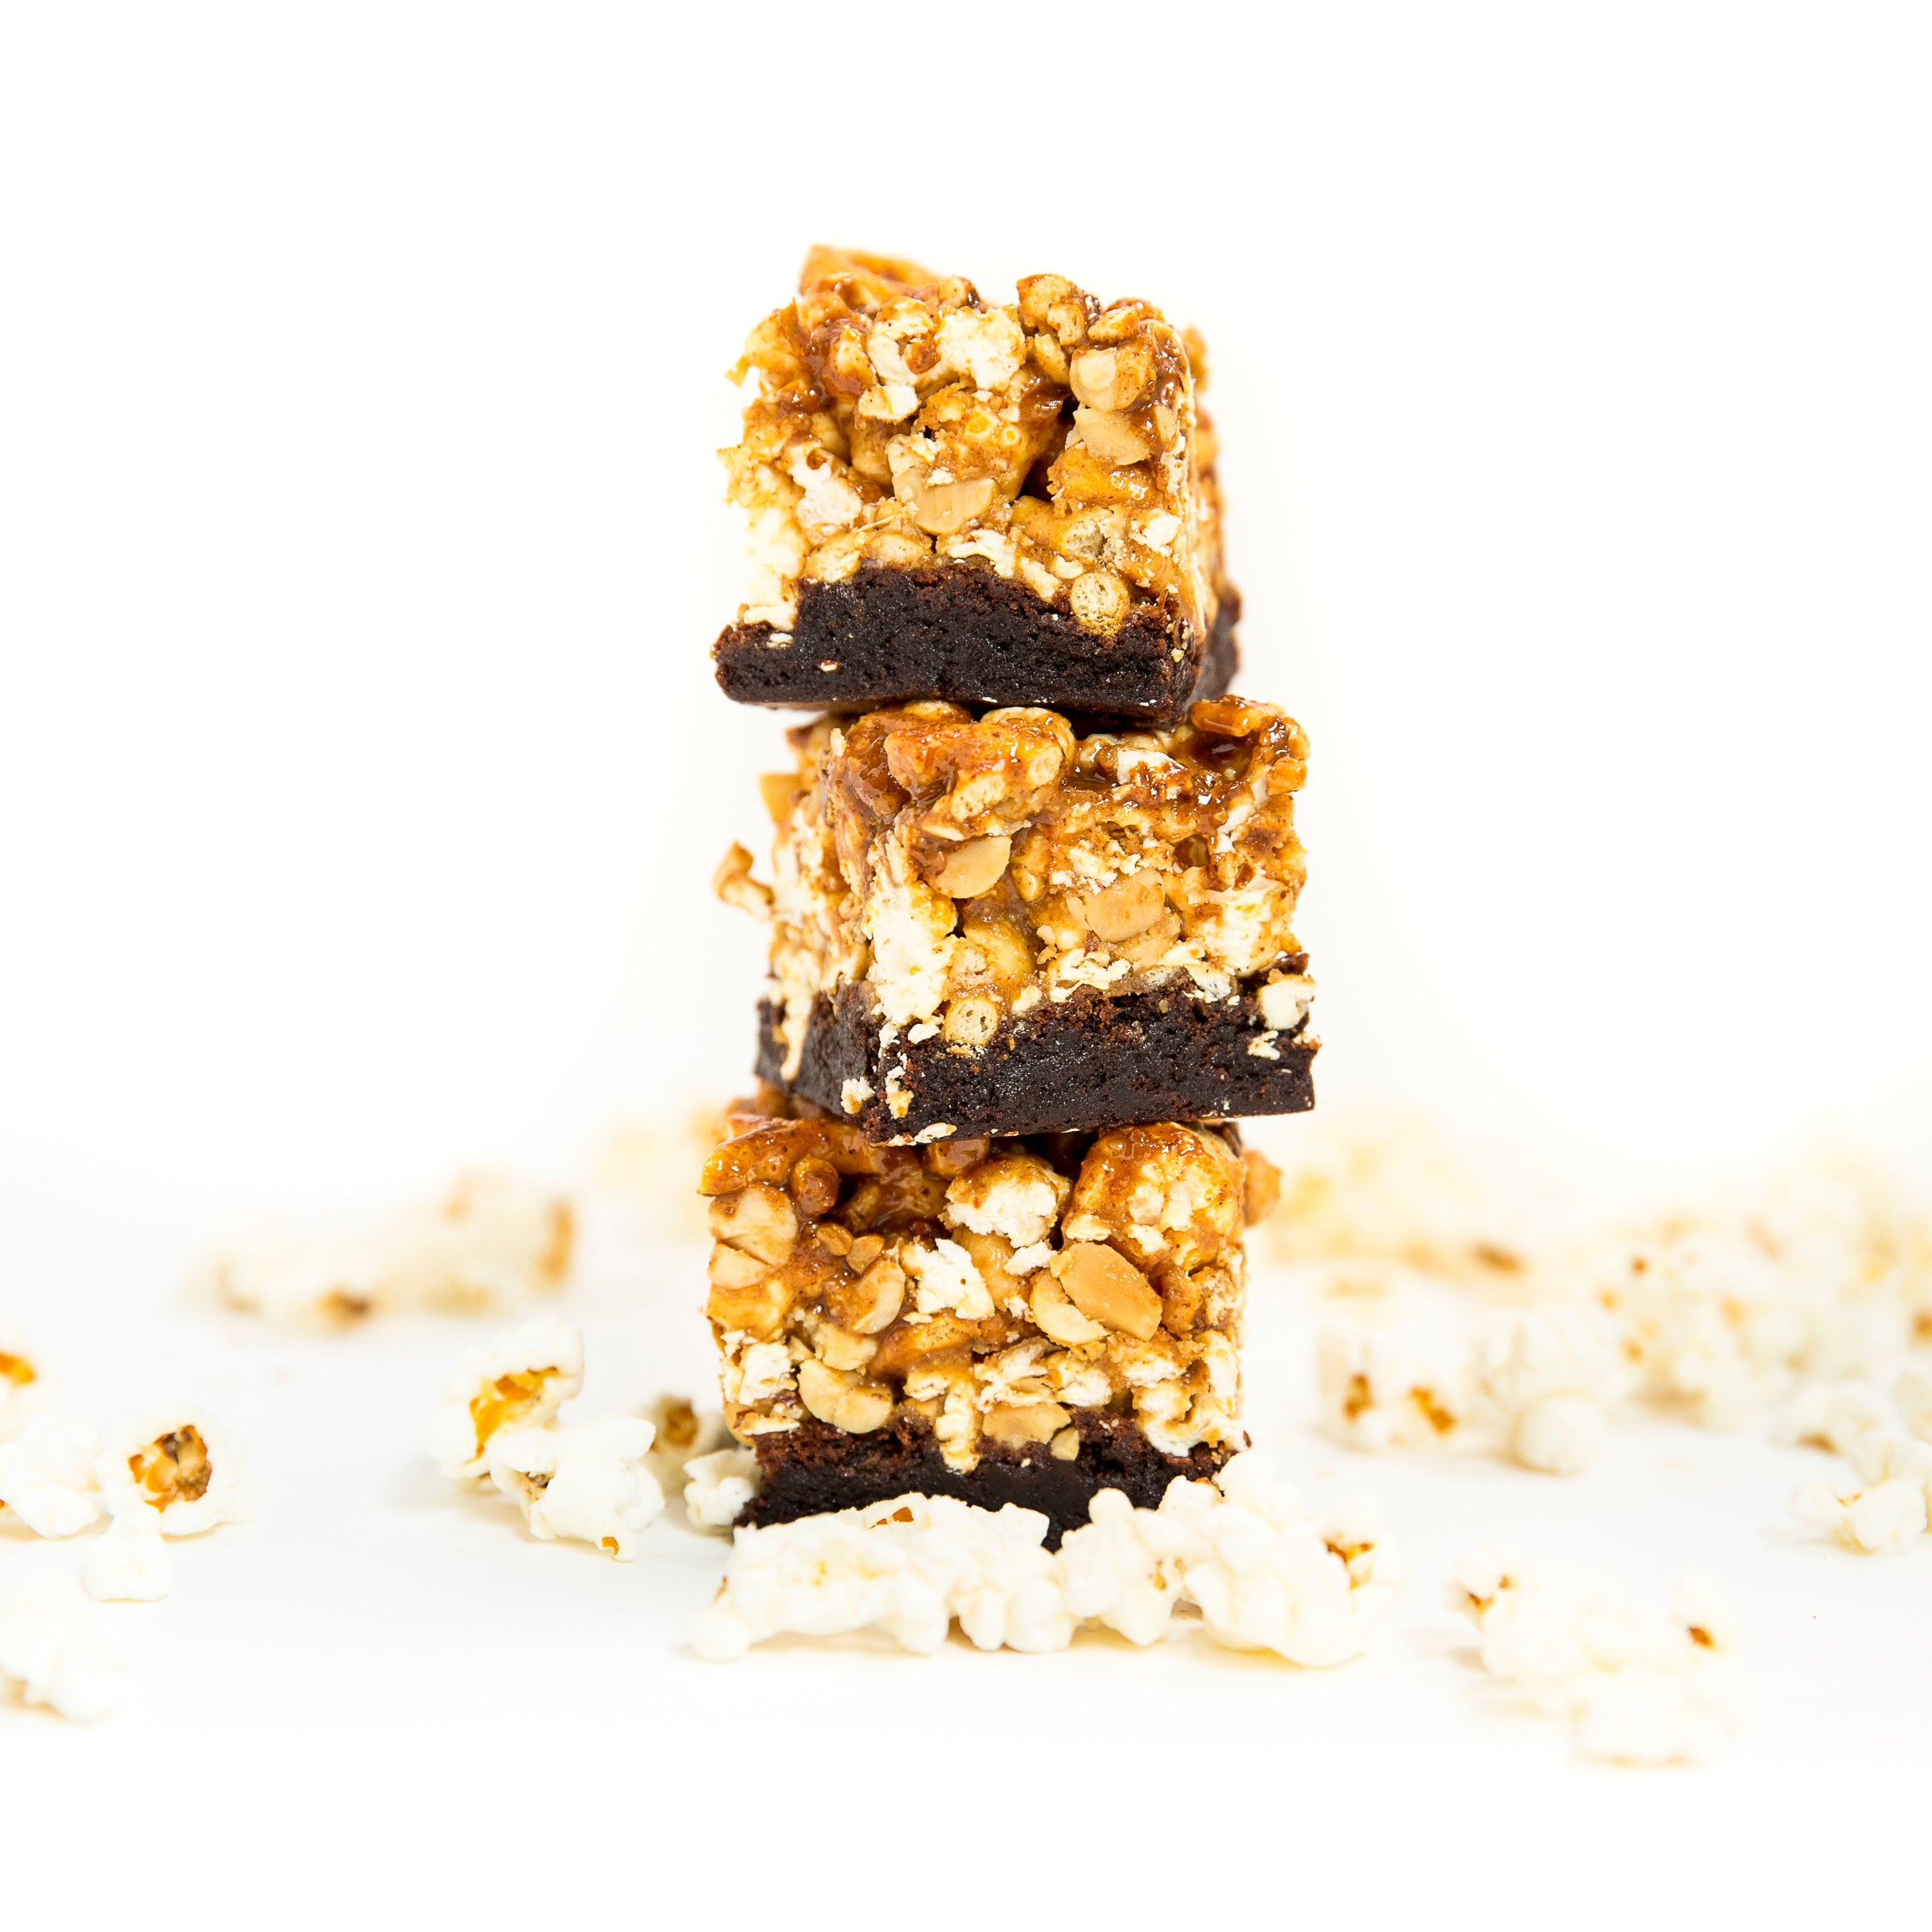 Image of three Miss Jones Baking Co Popcorn Brownies stacked and surrounded by popcorn